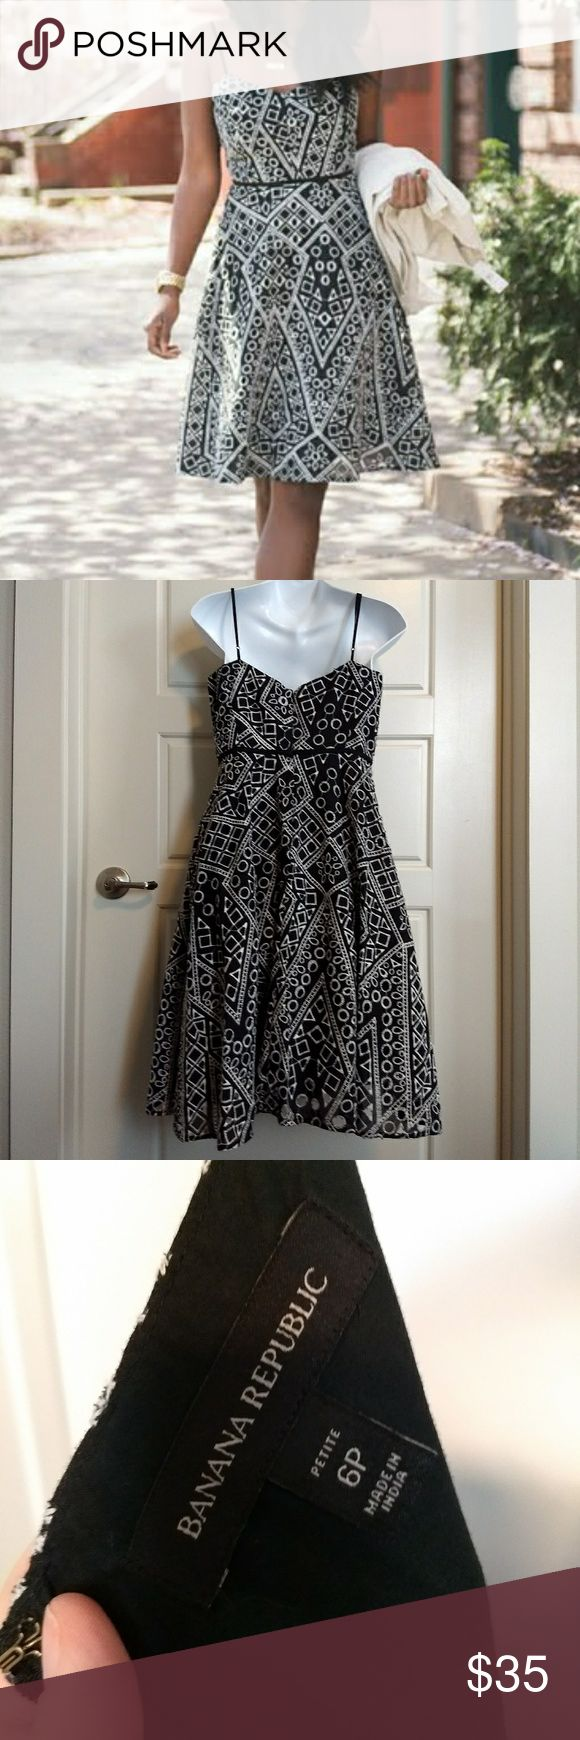 Banana Republic Geometric Pattern Petite Dress Gorgeous geometric patterned fabric with styled like cutouts. Beautiful black and white. Nicely lined with adjustable straps for the right fit. Flares out to compliment any body style. From smoke free home. Banana Republic Dresses